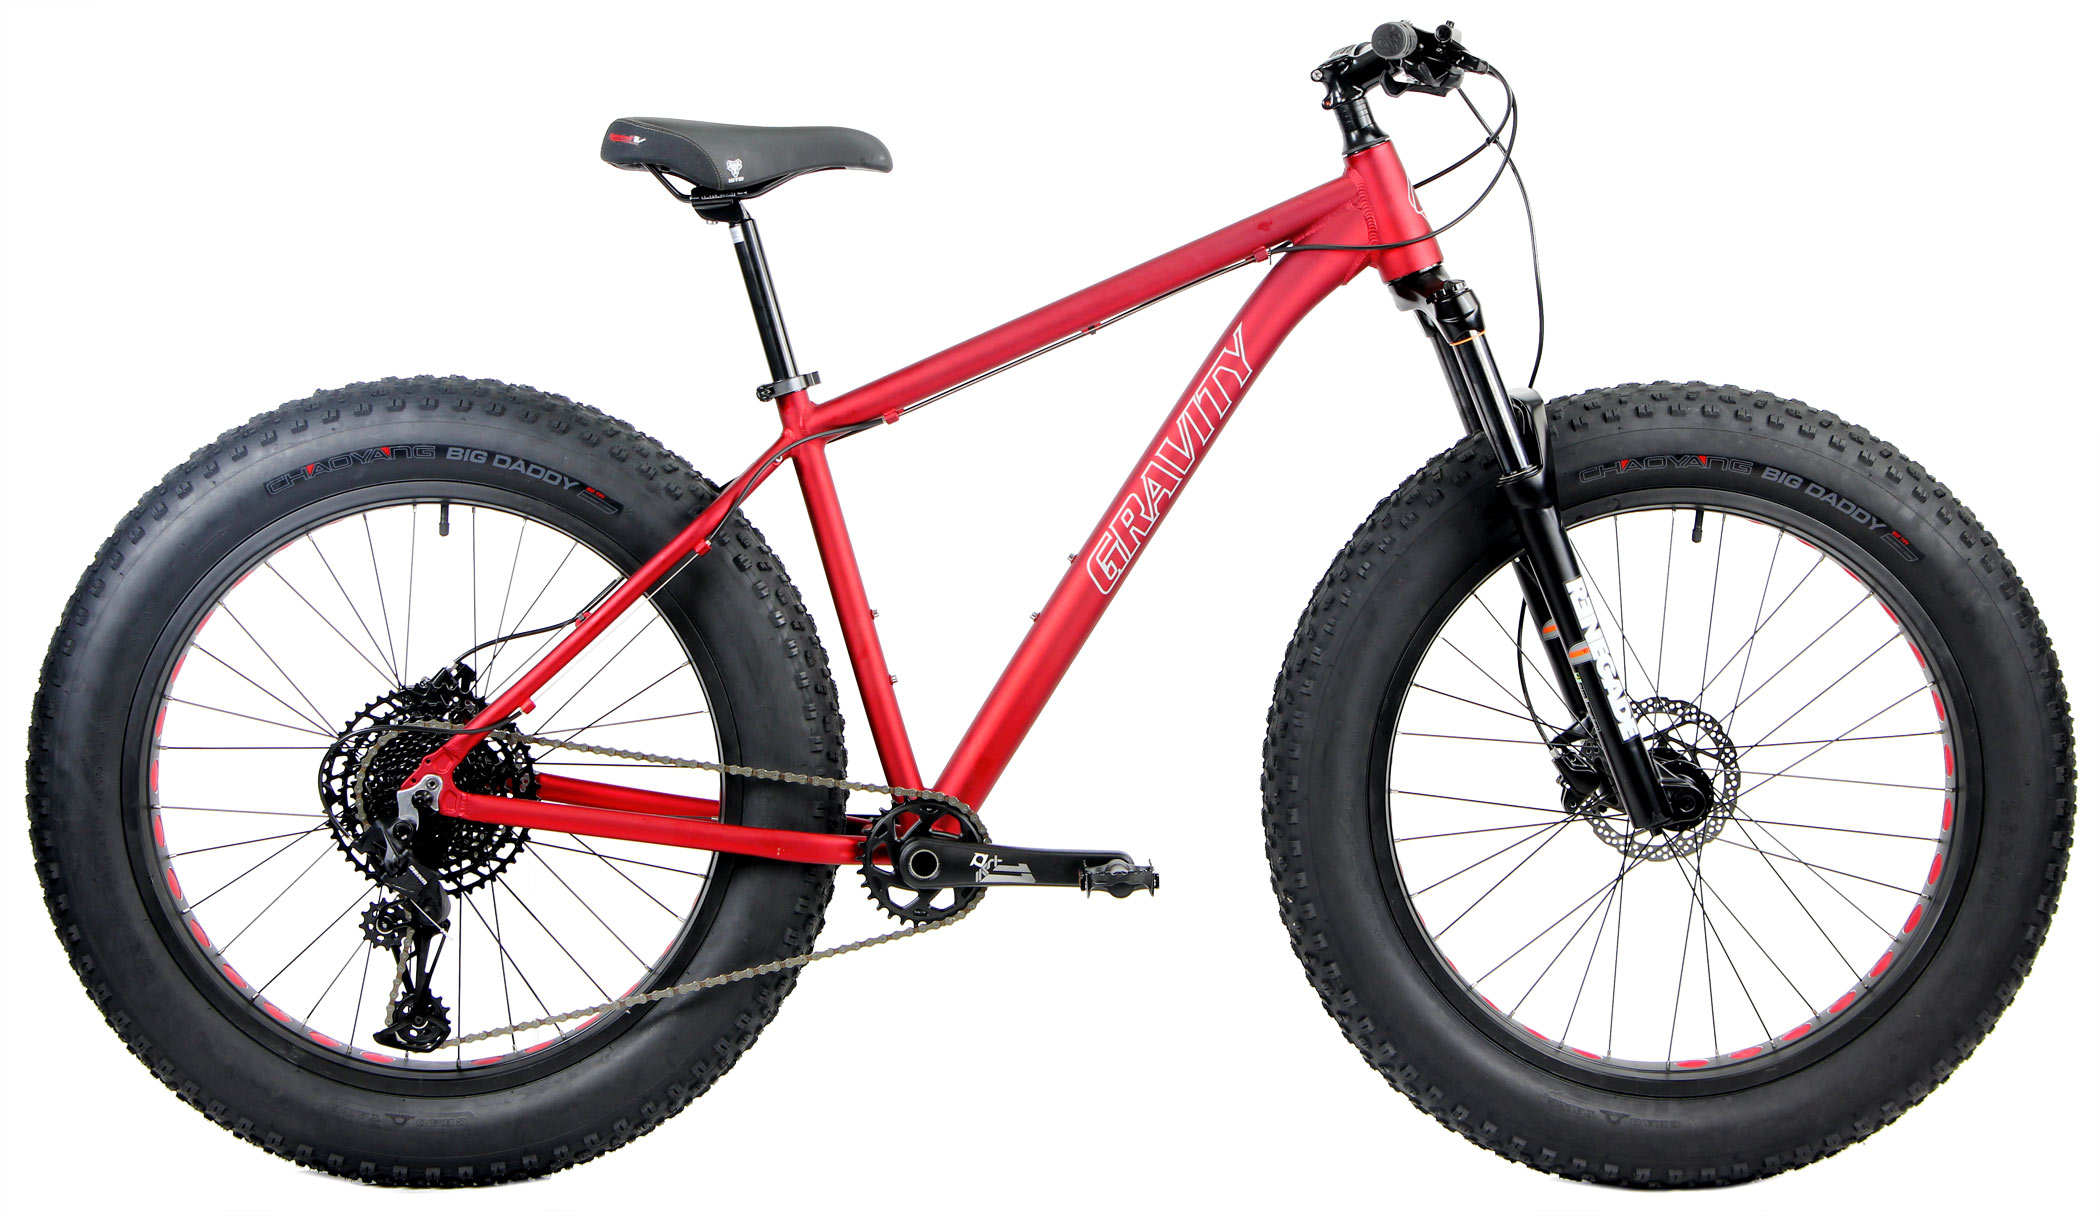 Bikes Gravity Bullseye Monster Five SX FS SRAM EAGLE SX 1X12 Fat Bike Image